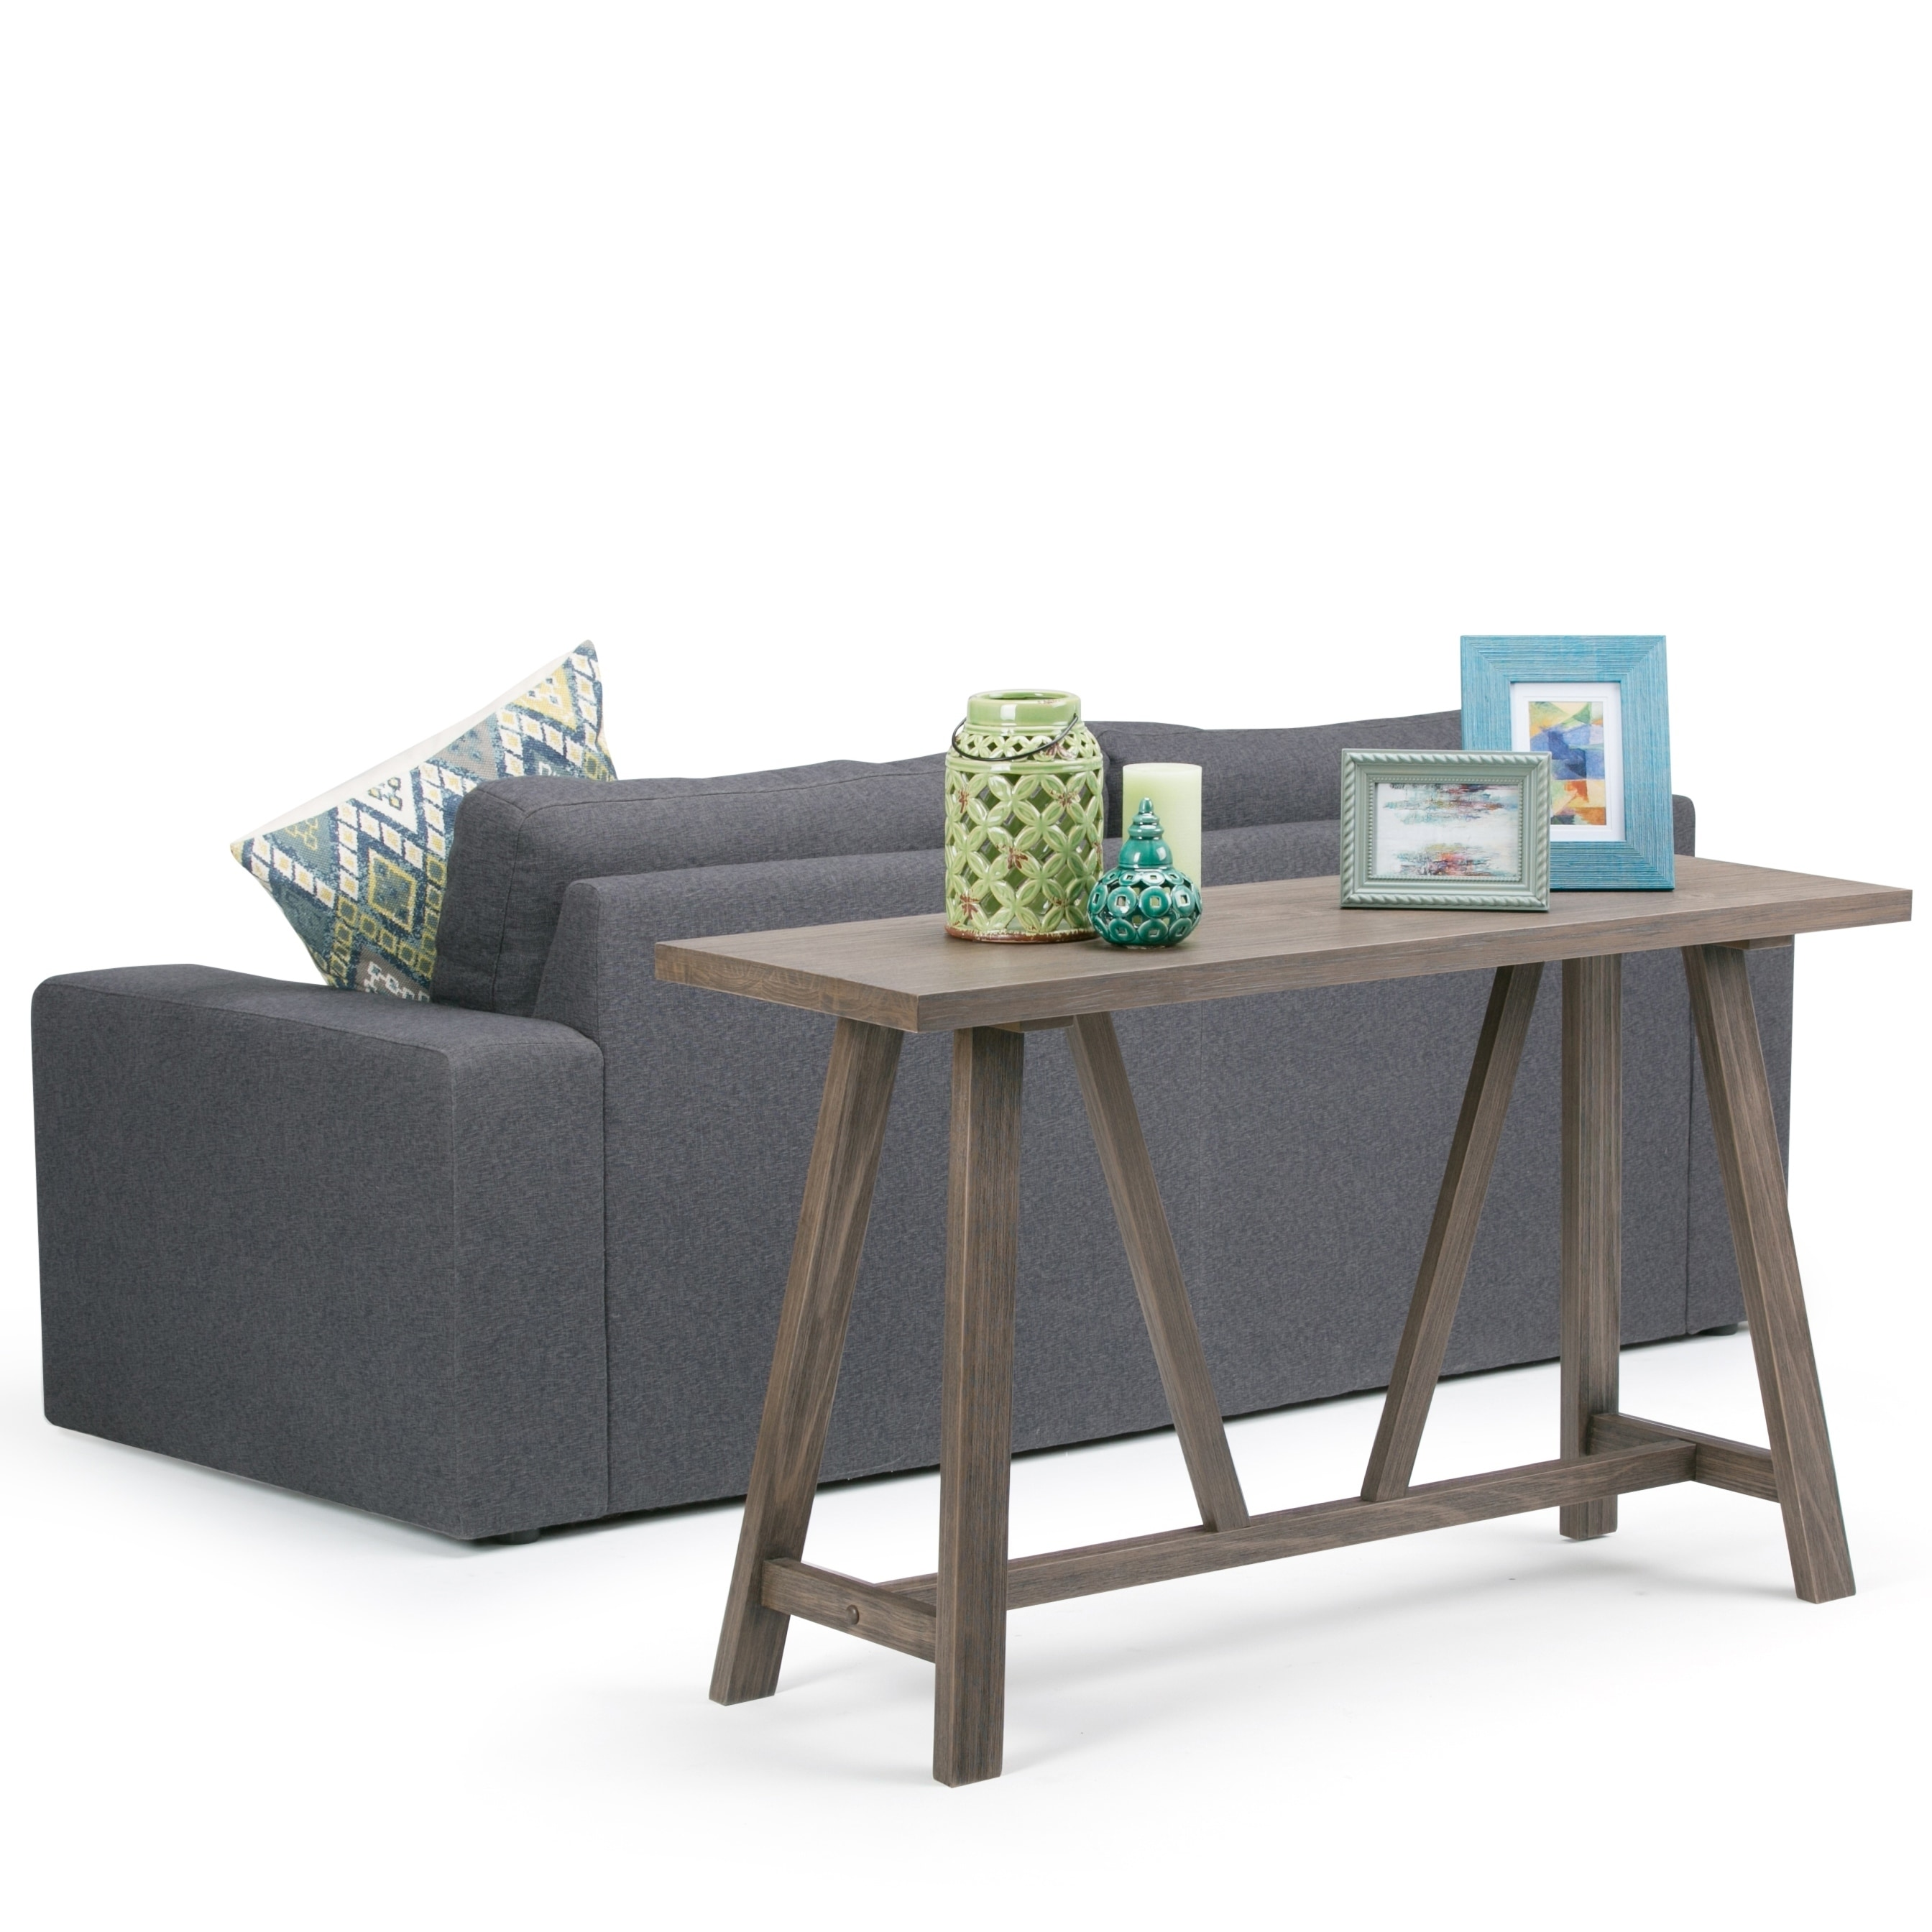 Wyndenhall Solid Wood 50 Inch Wide Modern Console Sofa Table In Driftwood